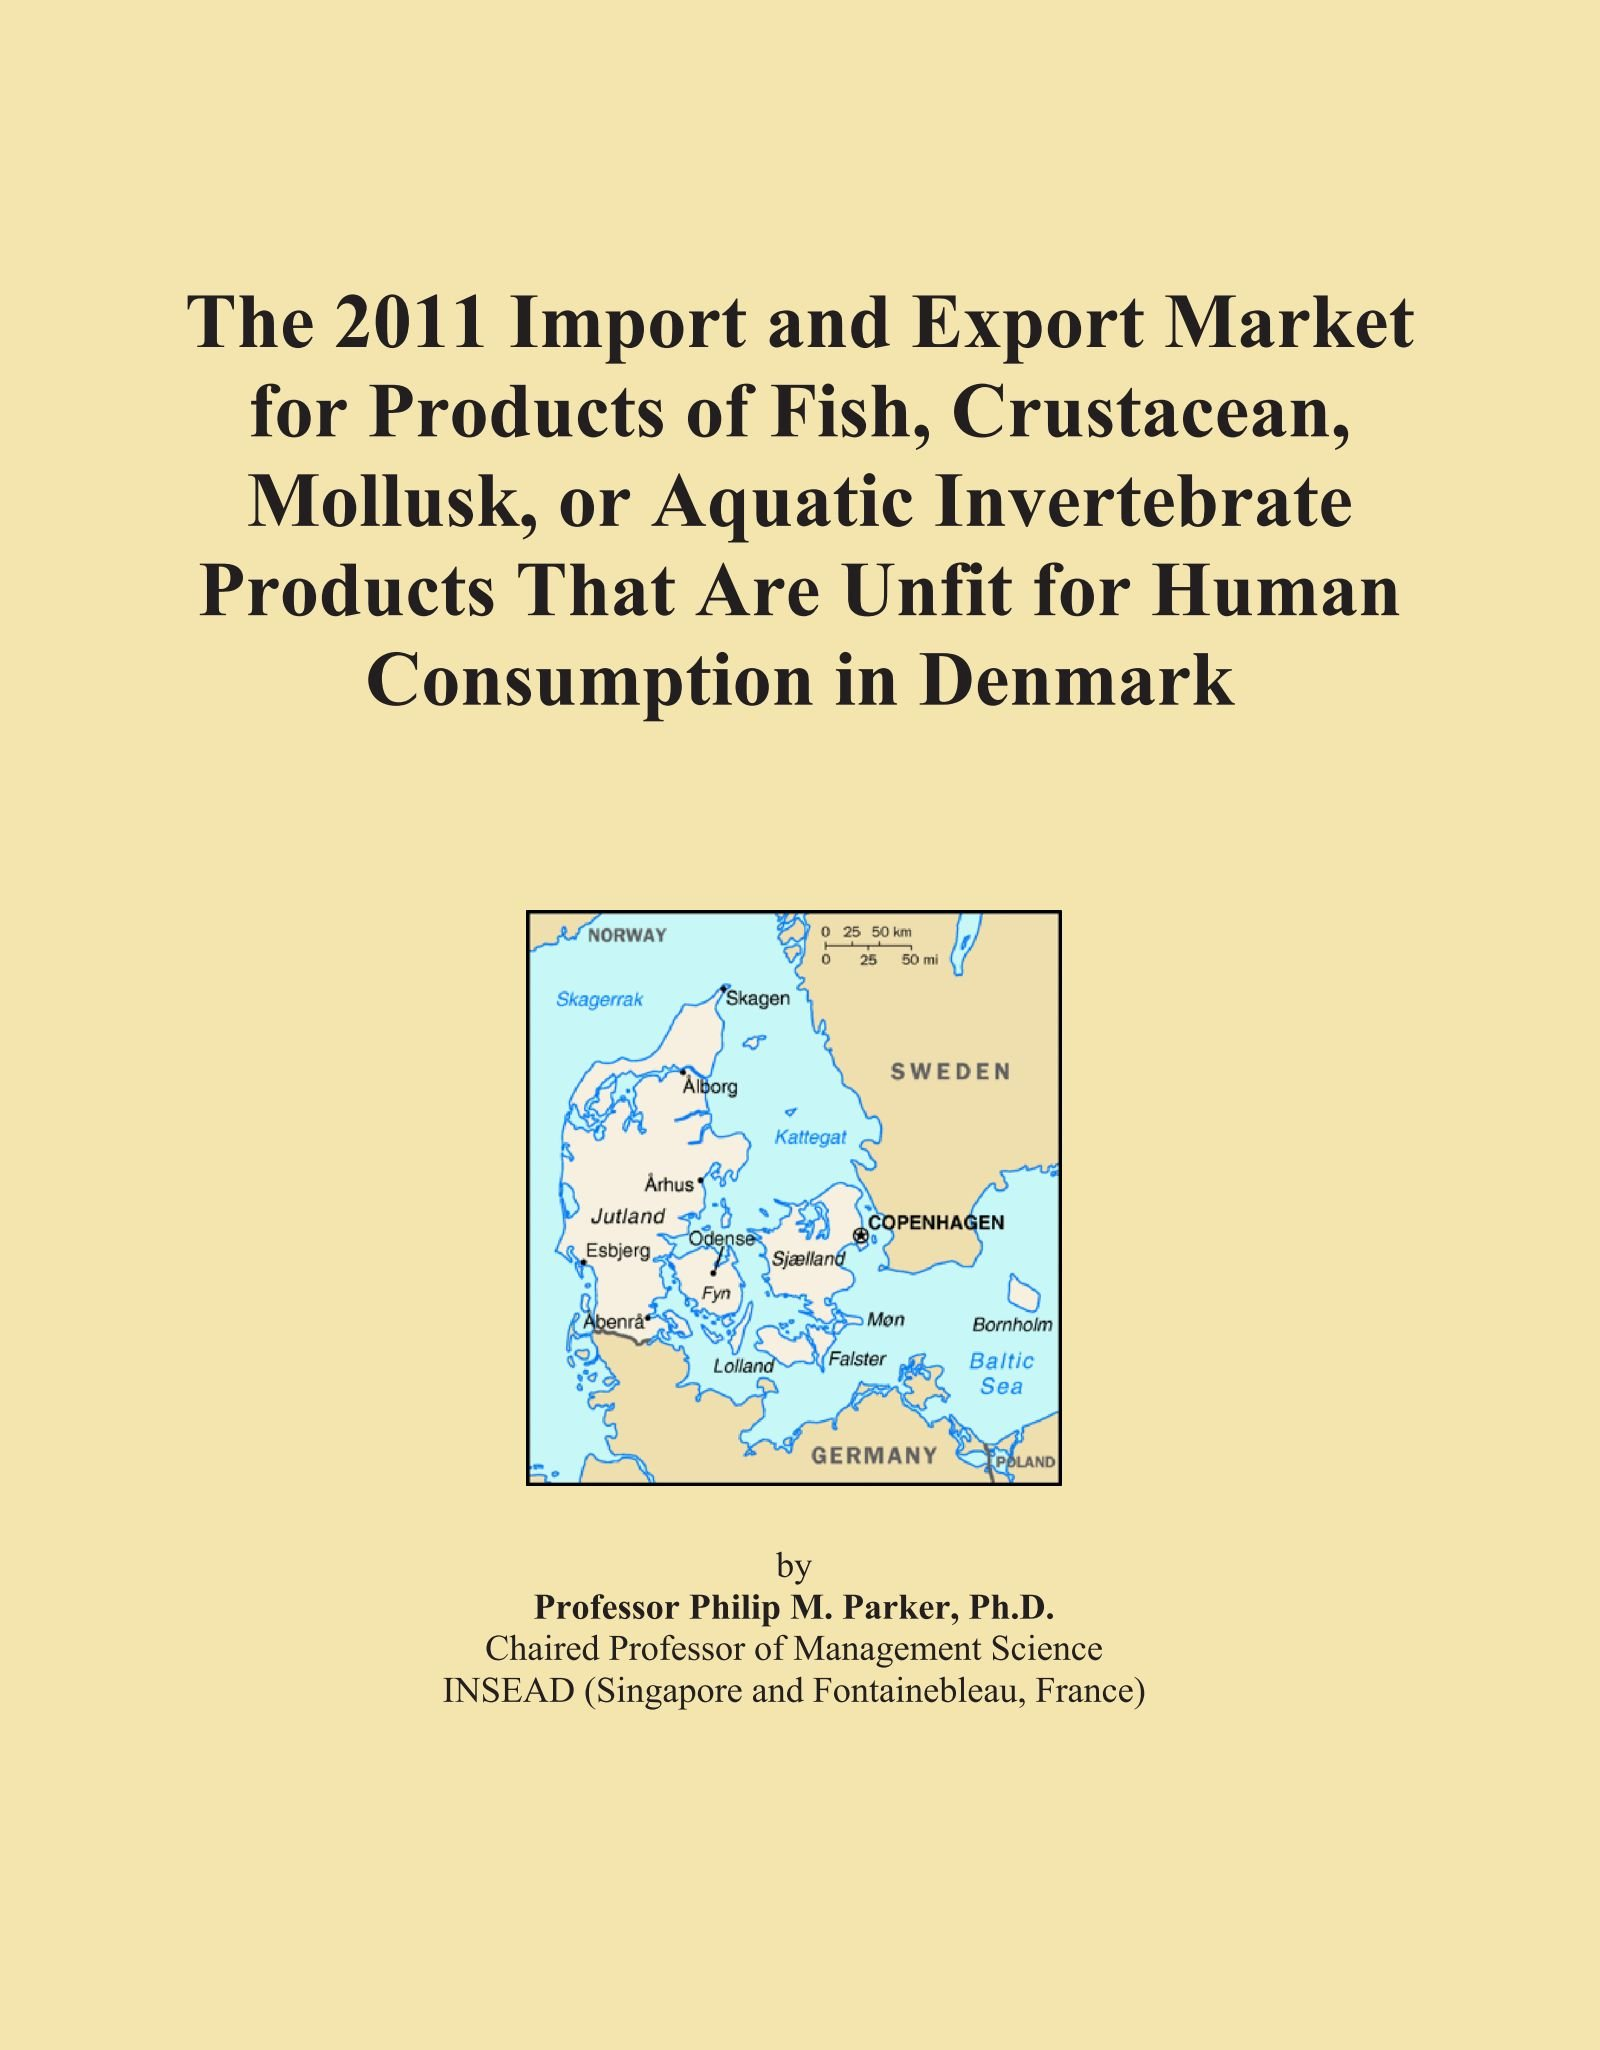 The 2011 Import and Export Market for Products of Fish, Crustacean, Mollusk, or Aquatic Invertebrate Products That Are Unfit for Human Consumption in Denmark pdf